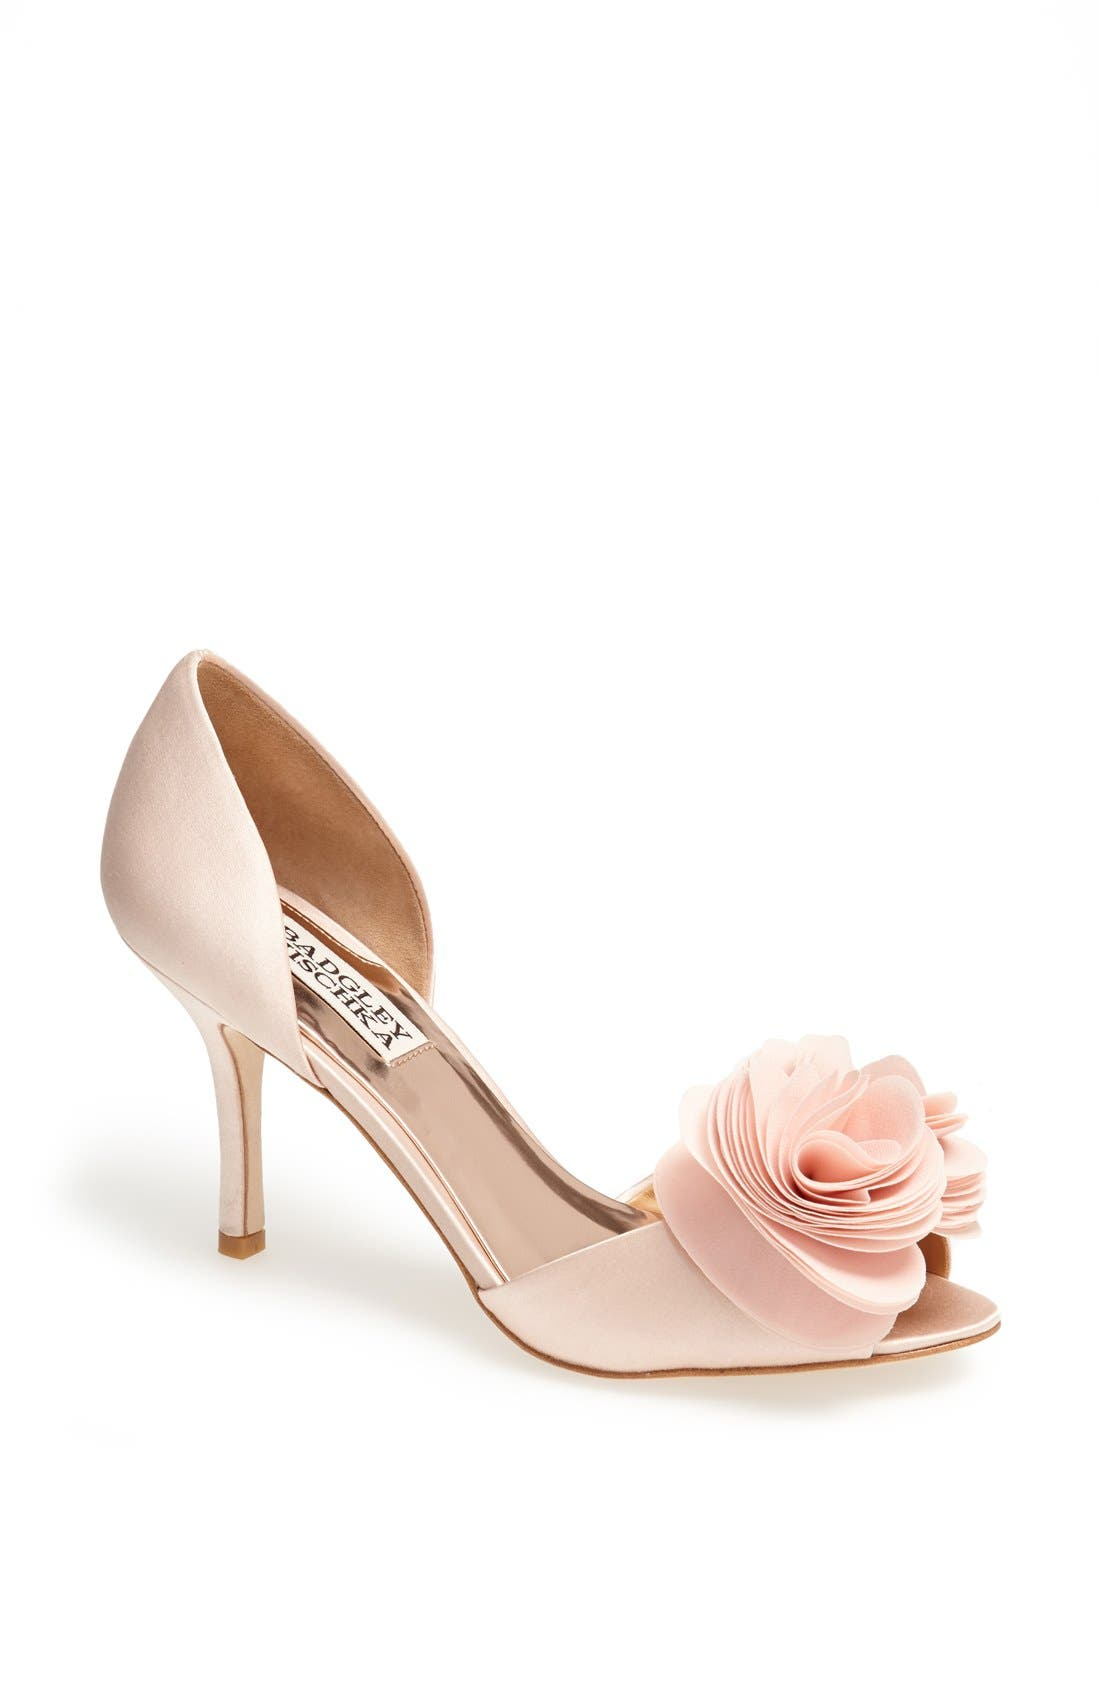 Alternate Image 1 Selected - Badgley Mischka 'Thora' Pump